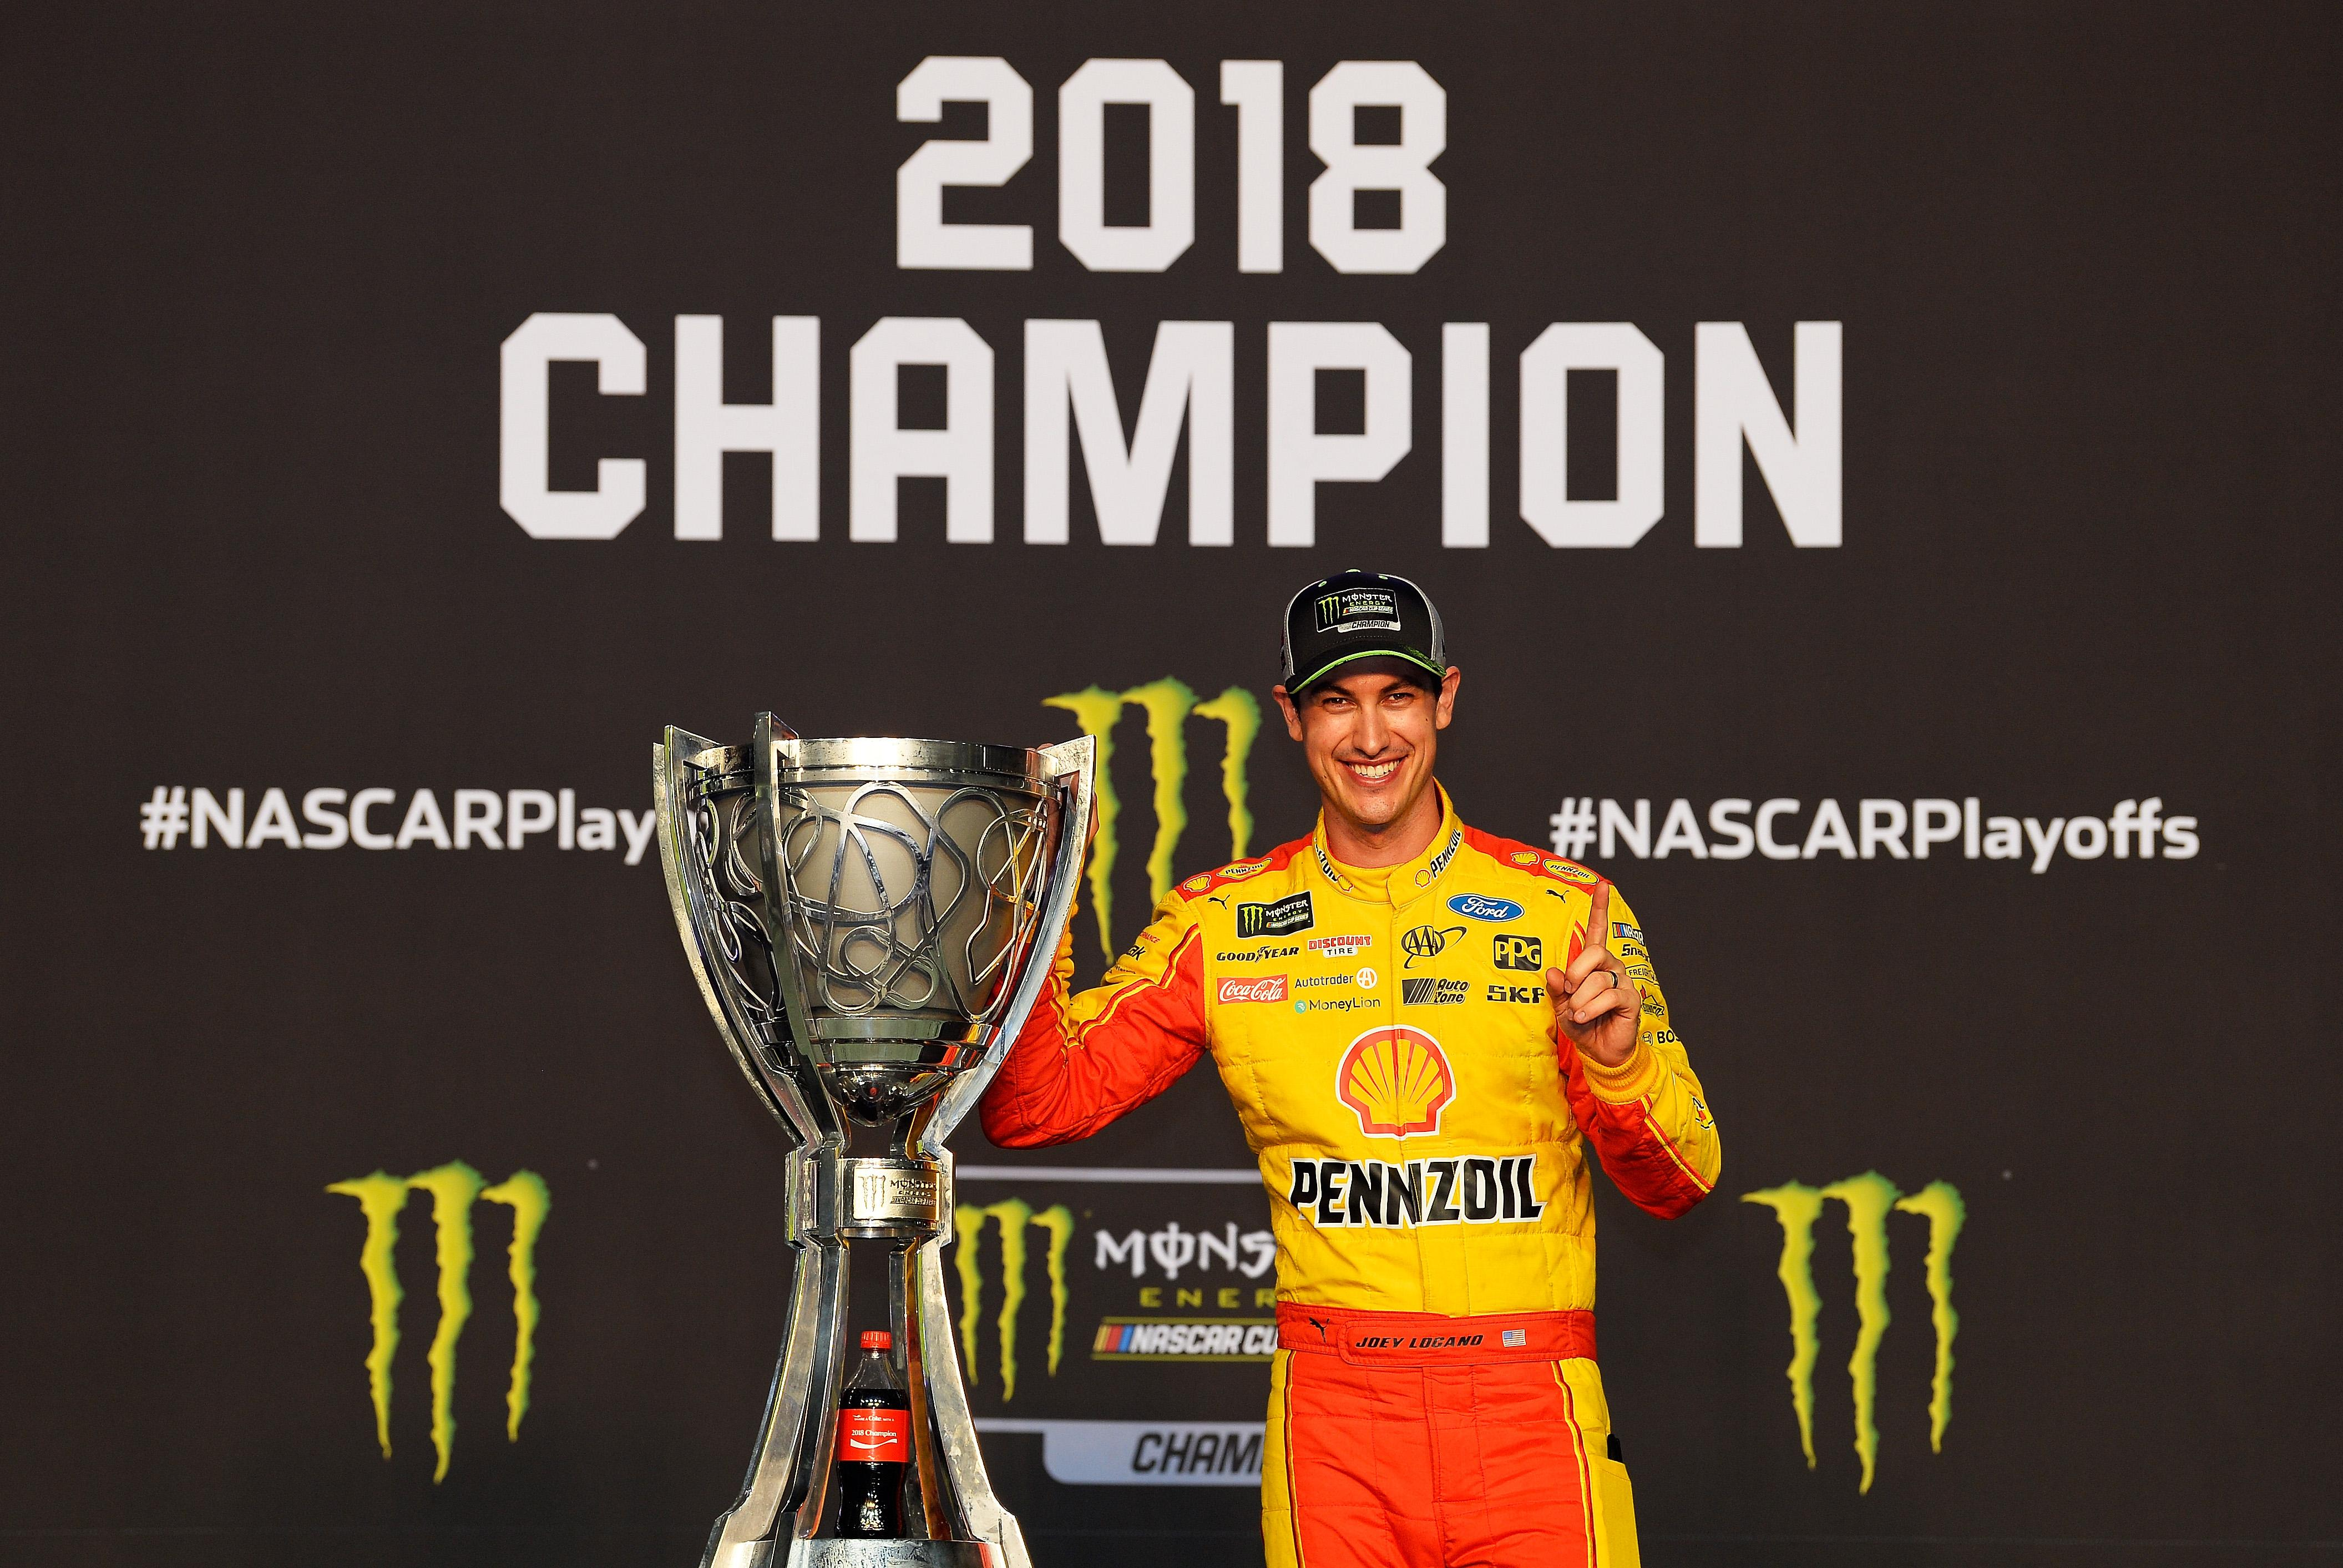 Joey Logano Wins First NASCAR Cup Series Championship at Homestead-Miami Speedway